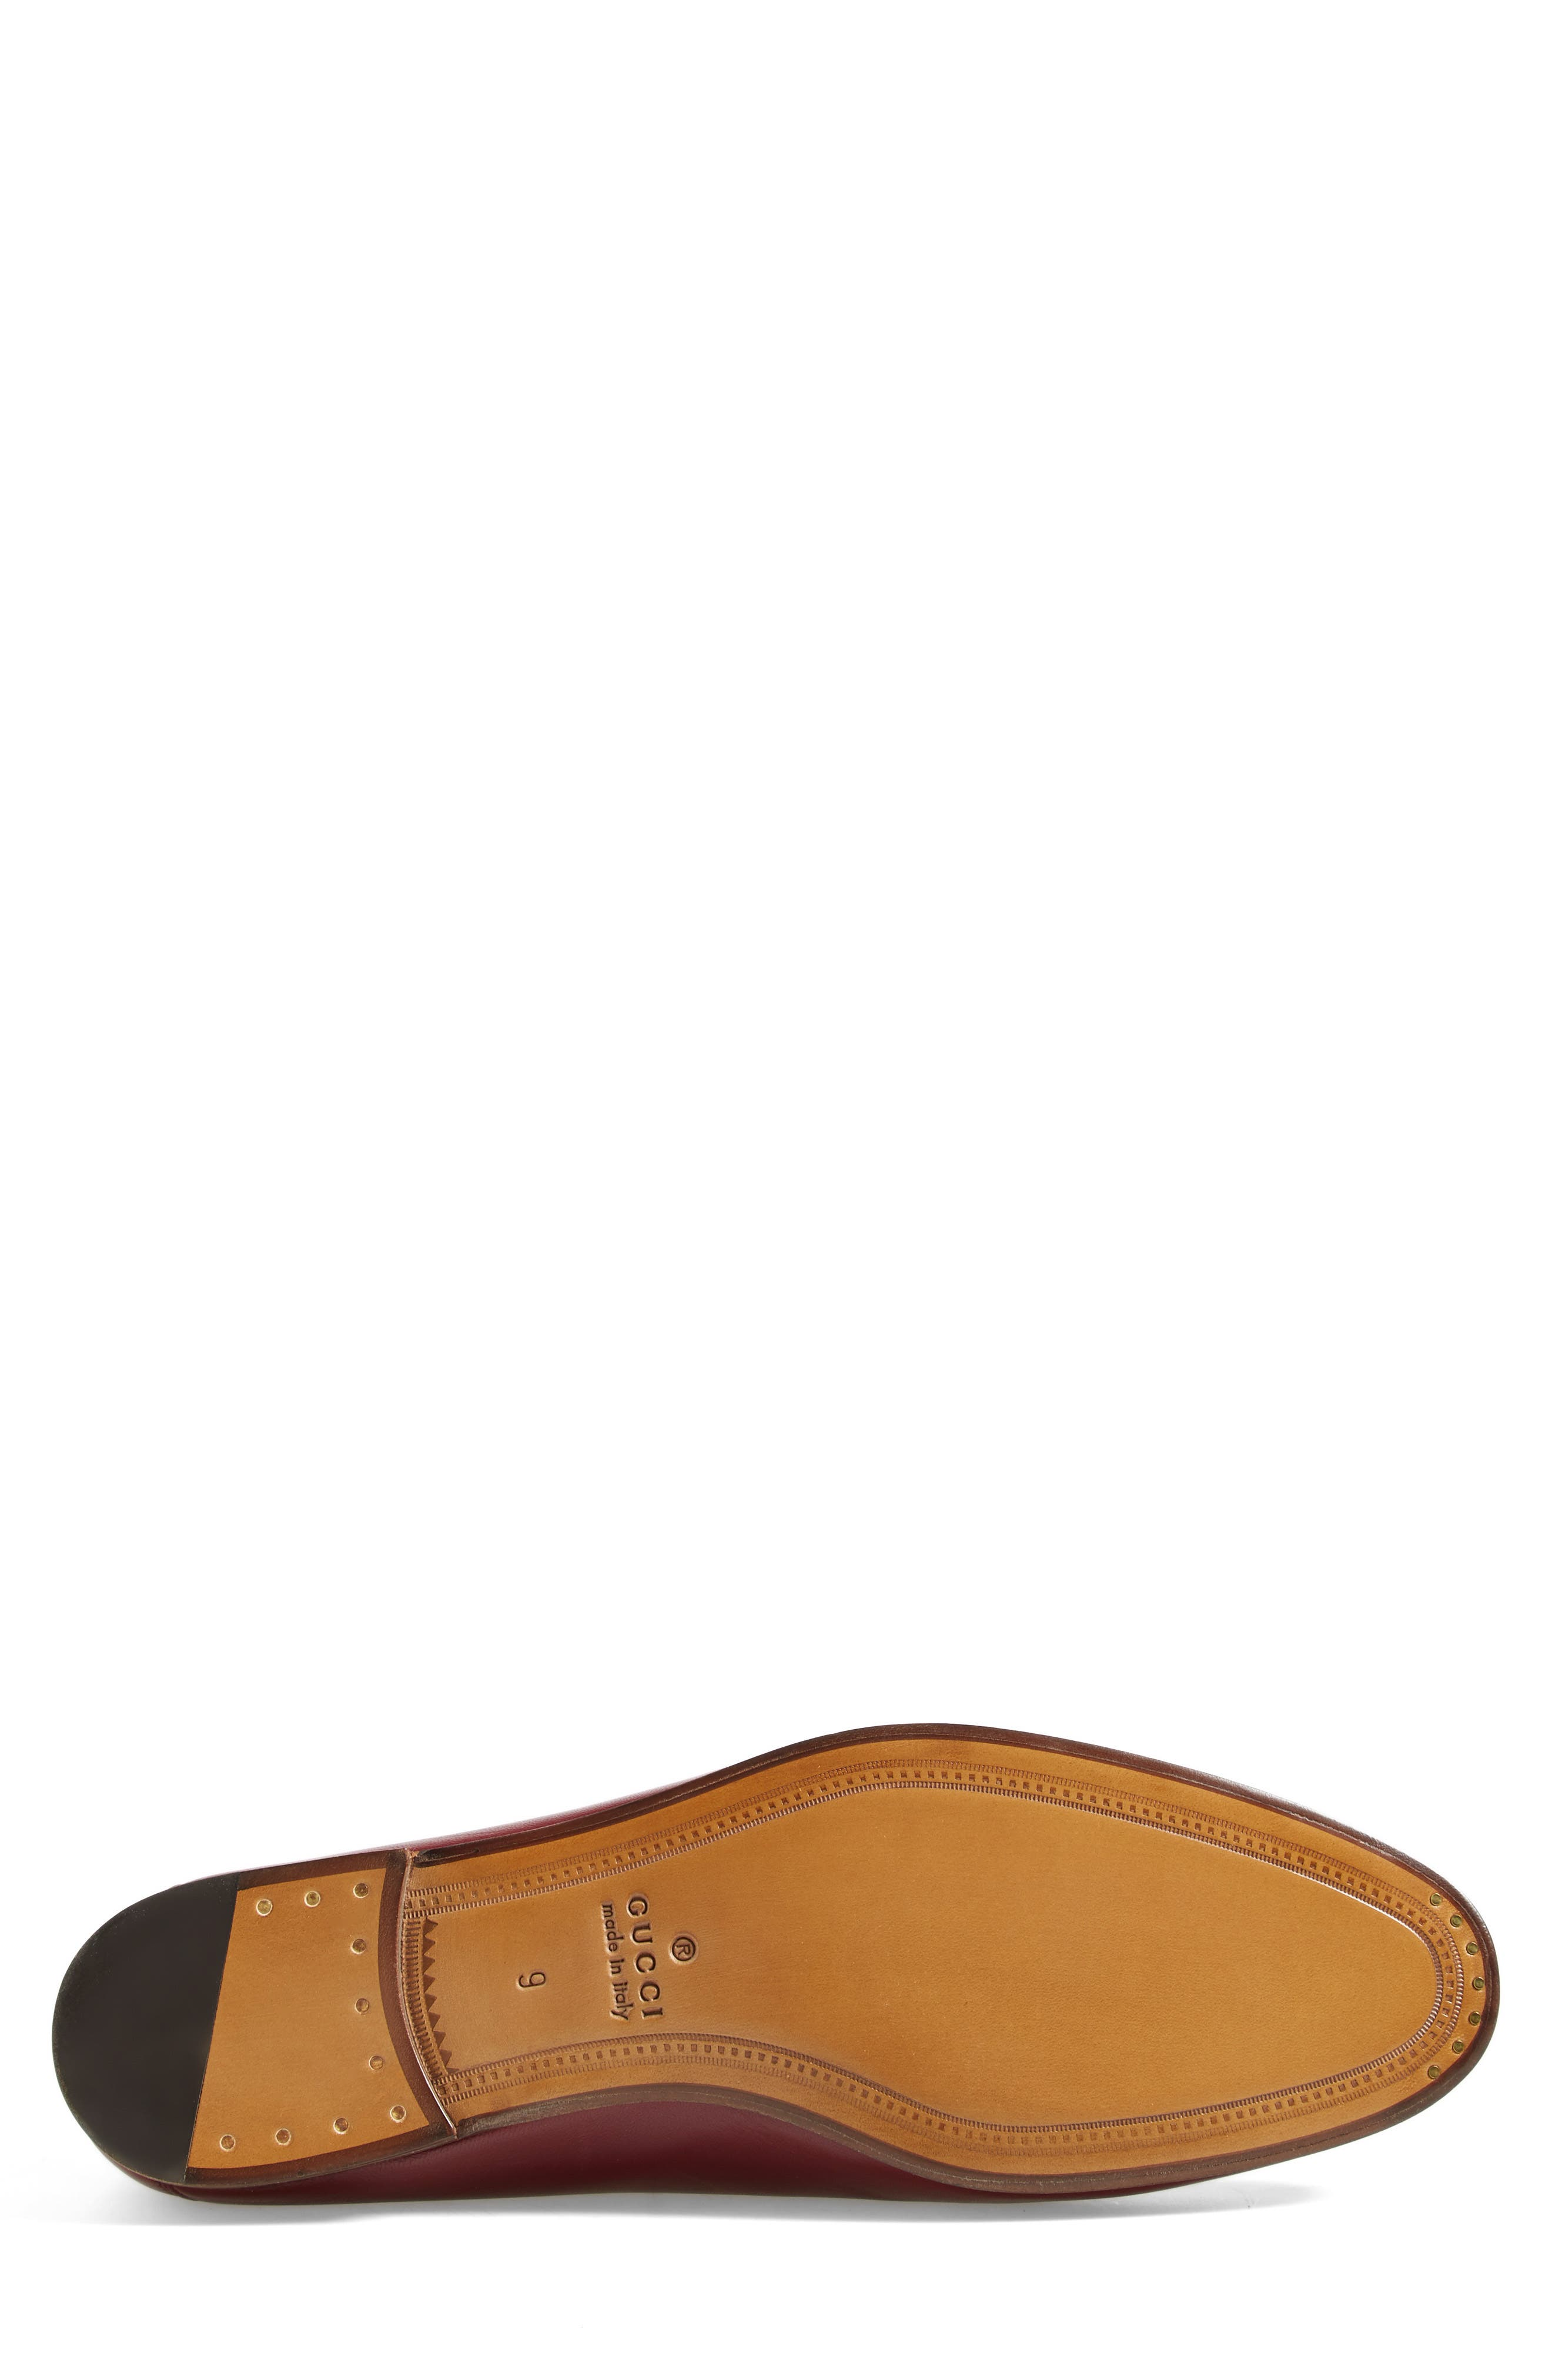 Brixton Leather Loafer,                             Alternate thumbnail 11, color,